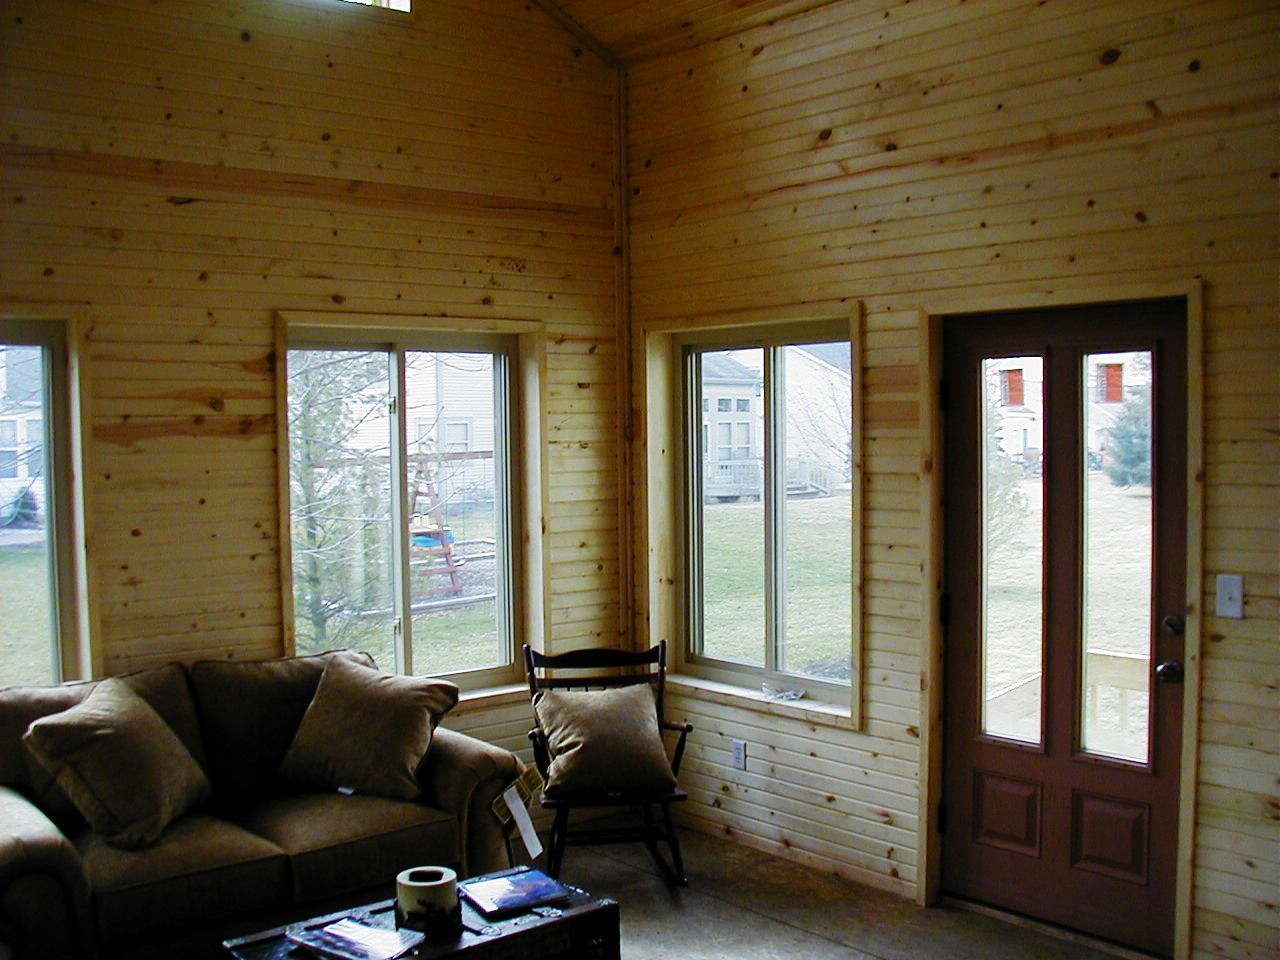 Rustic sunroom decorating ideas Fireplace This Four Season Room Addition Gets Its Interior Design Inspiration From The Great Outdoors With The Rustic Wood Walls Afraidofus This Four Season Room Addition Gets Its Interior Design Inspiration